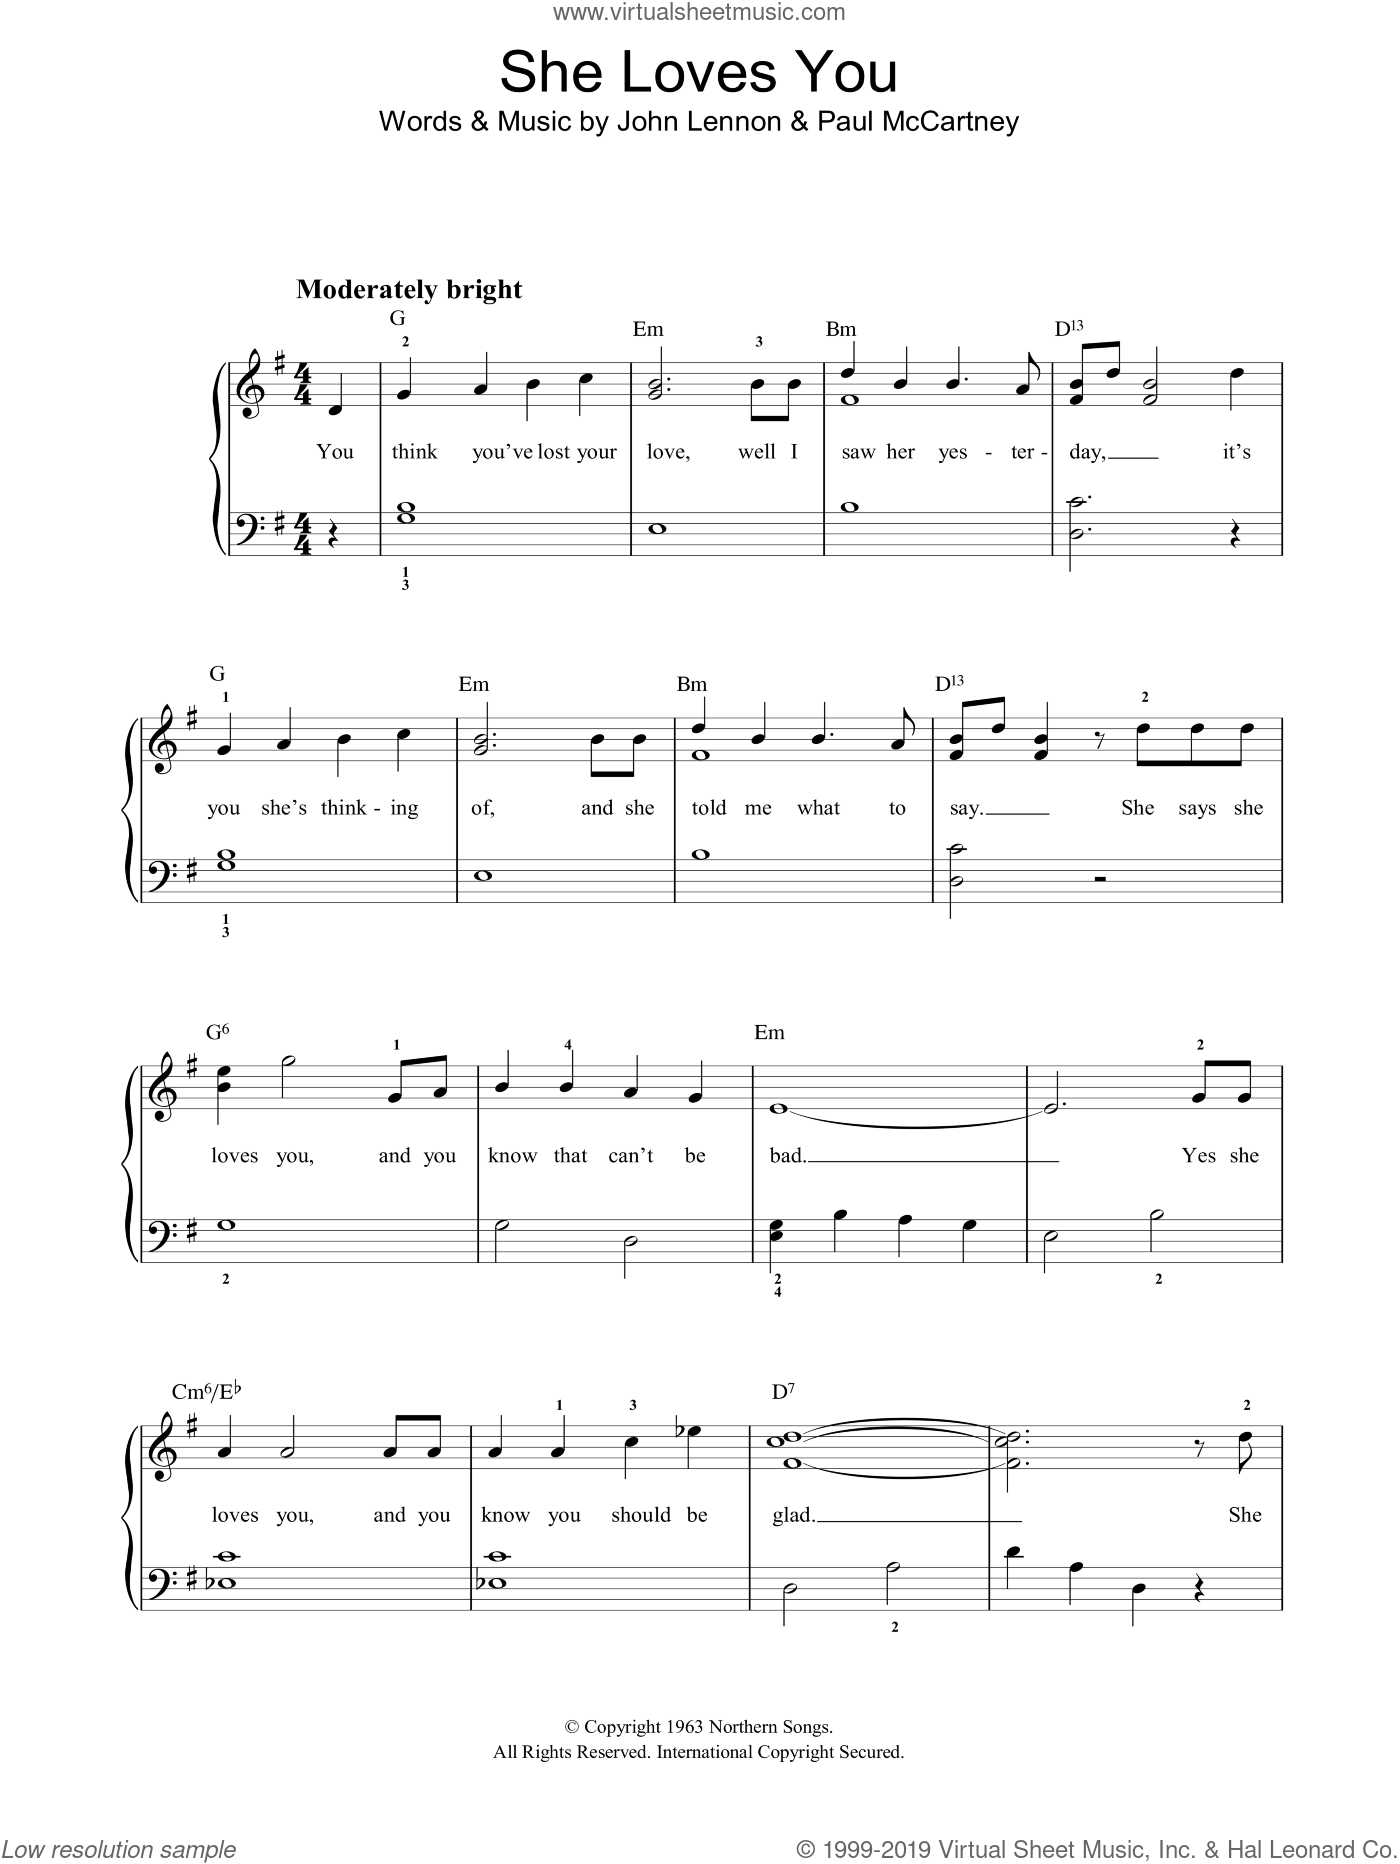 She Loves You sheet music for piano solo by The Beatles, John Lennon and Paul McCartney, easy skill level